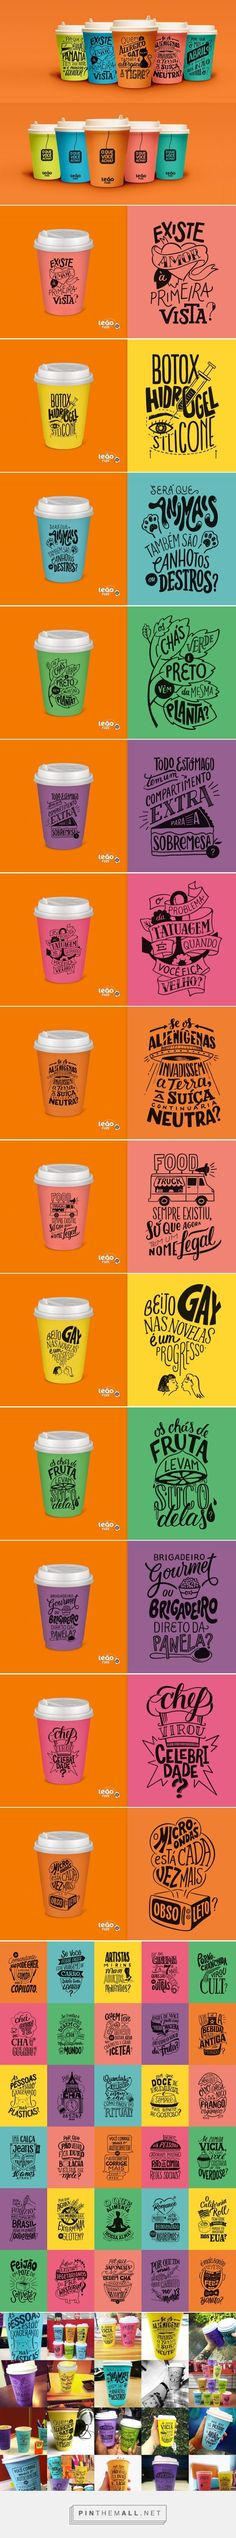 Illustration, typography and packaging for Leão Fuze Letterings on Behance curated by Packaging Diva PD.